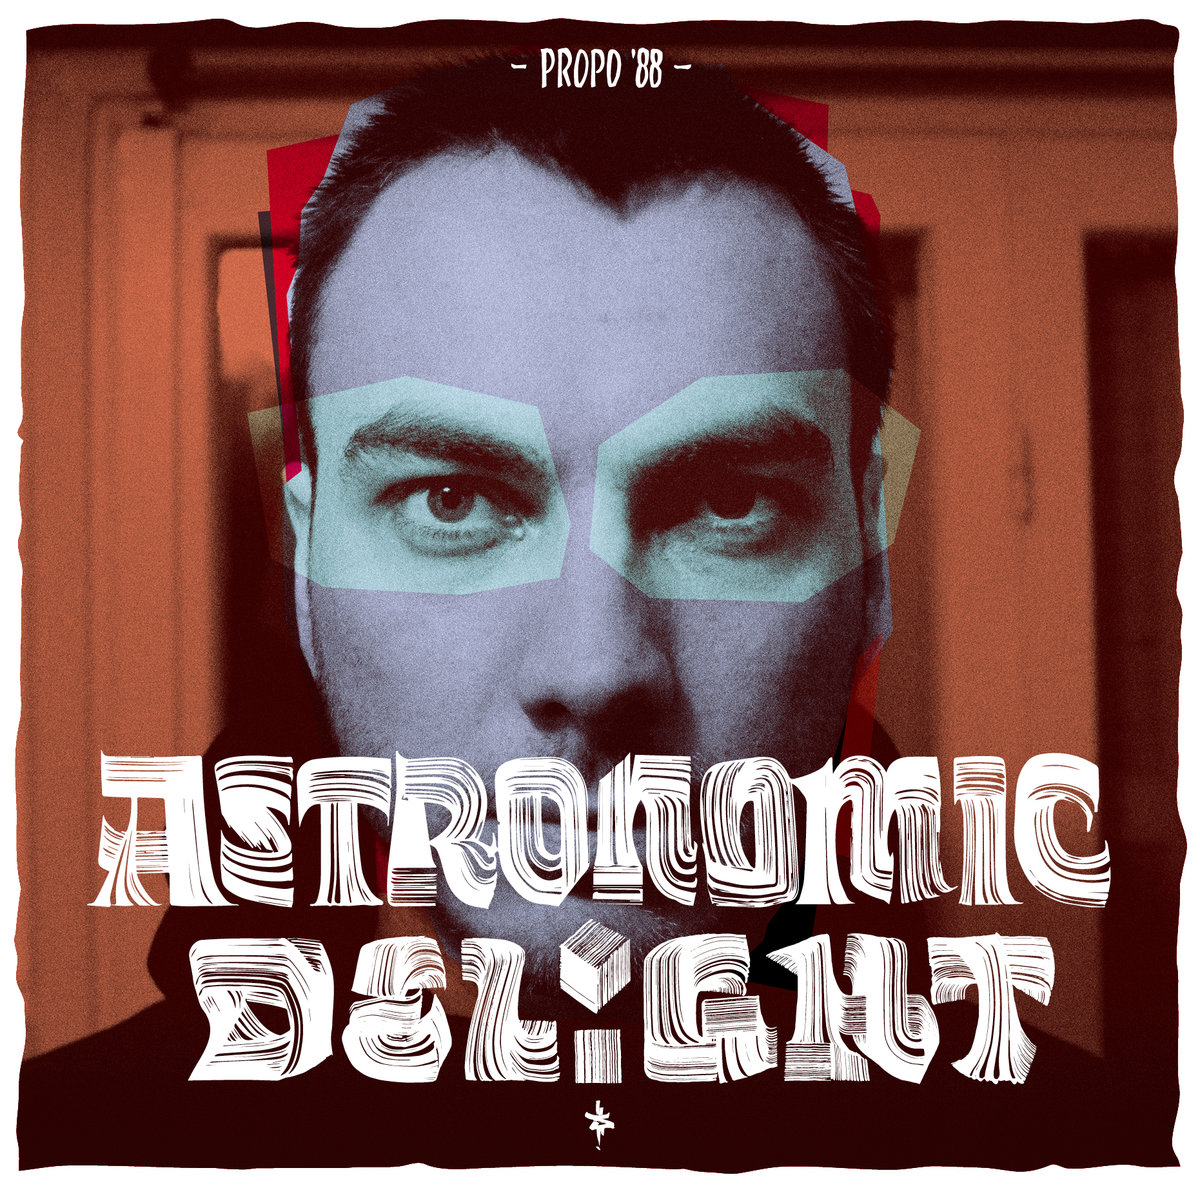 Propo'88 – Astronomic Delight LP